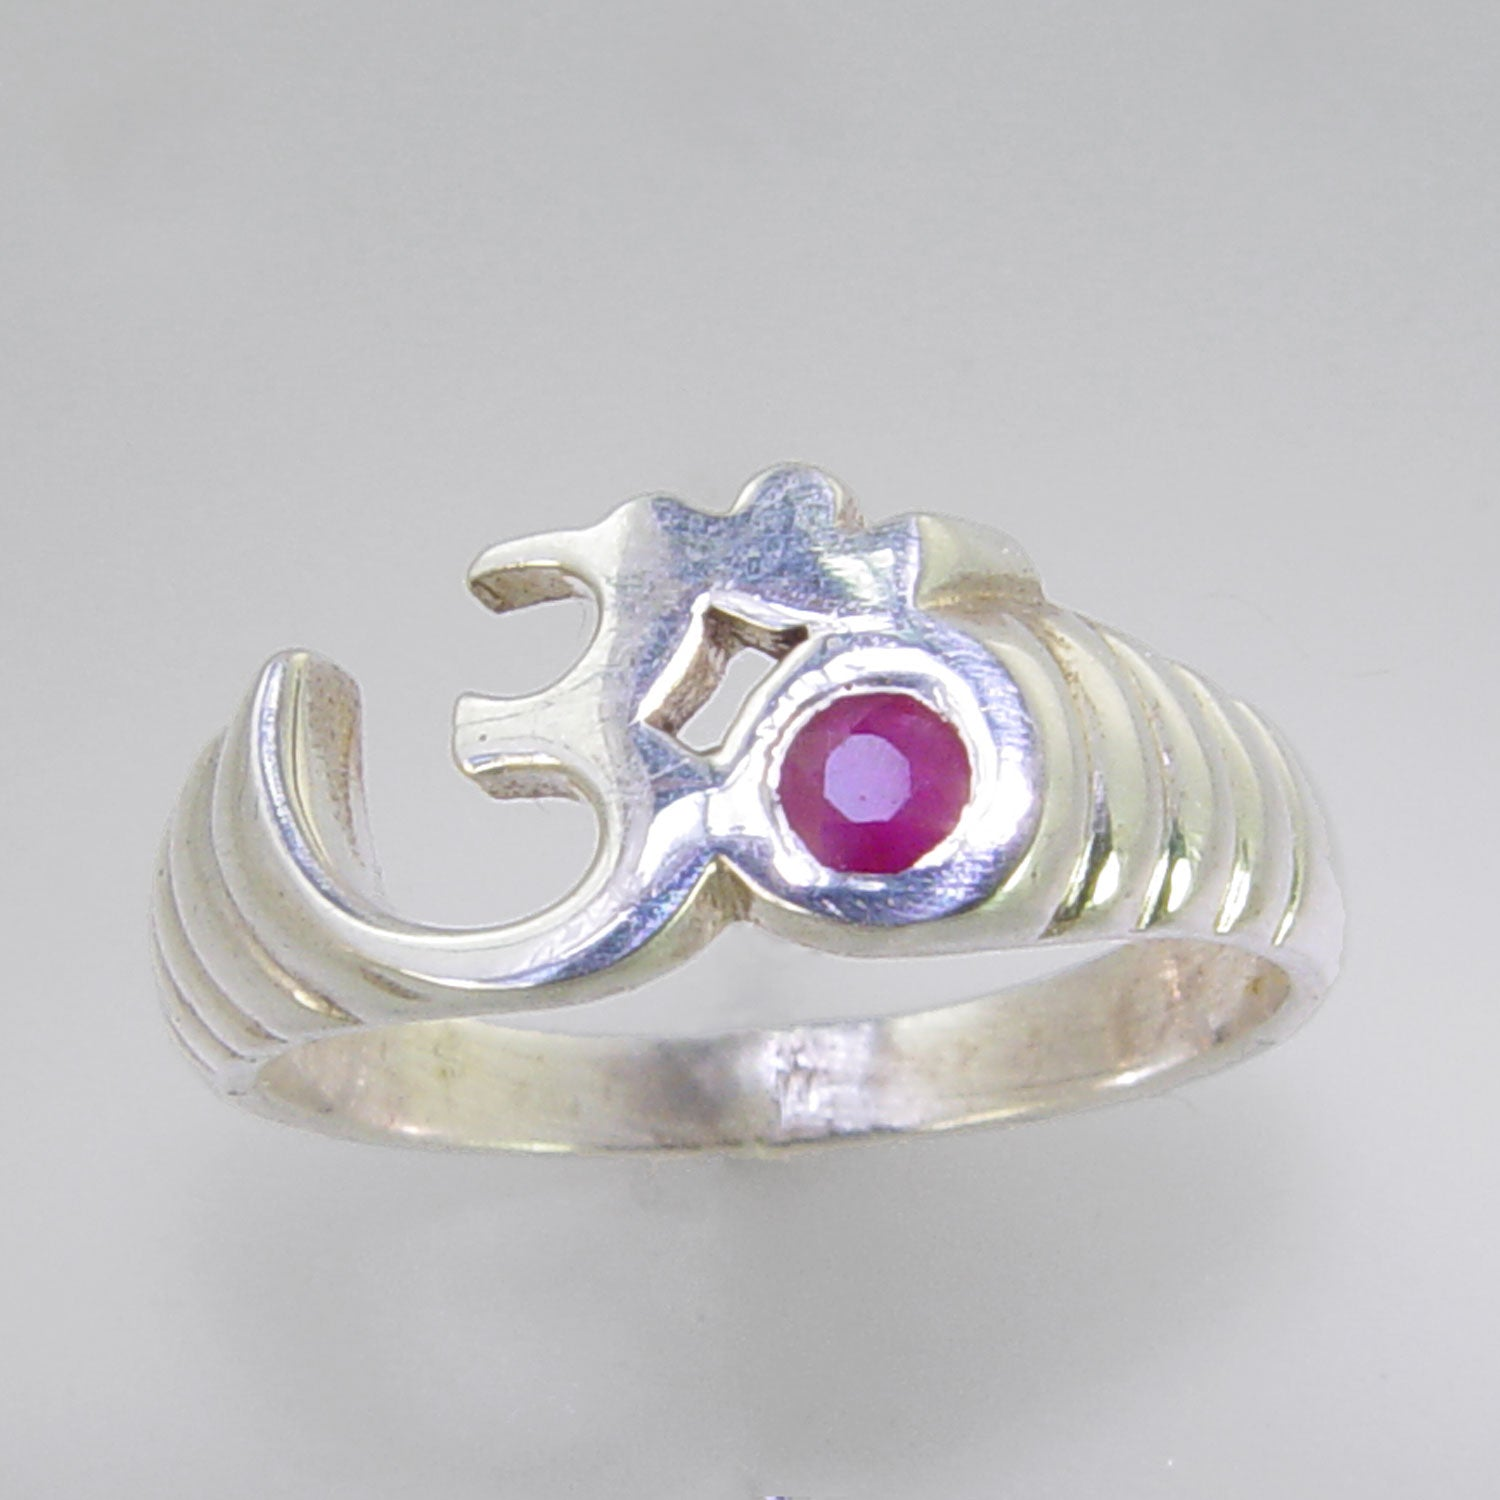 Sun Aum Ring with Small Faceted Ruby Sterling Silver Ring, Size 8